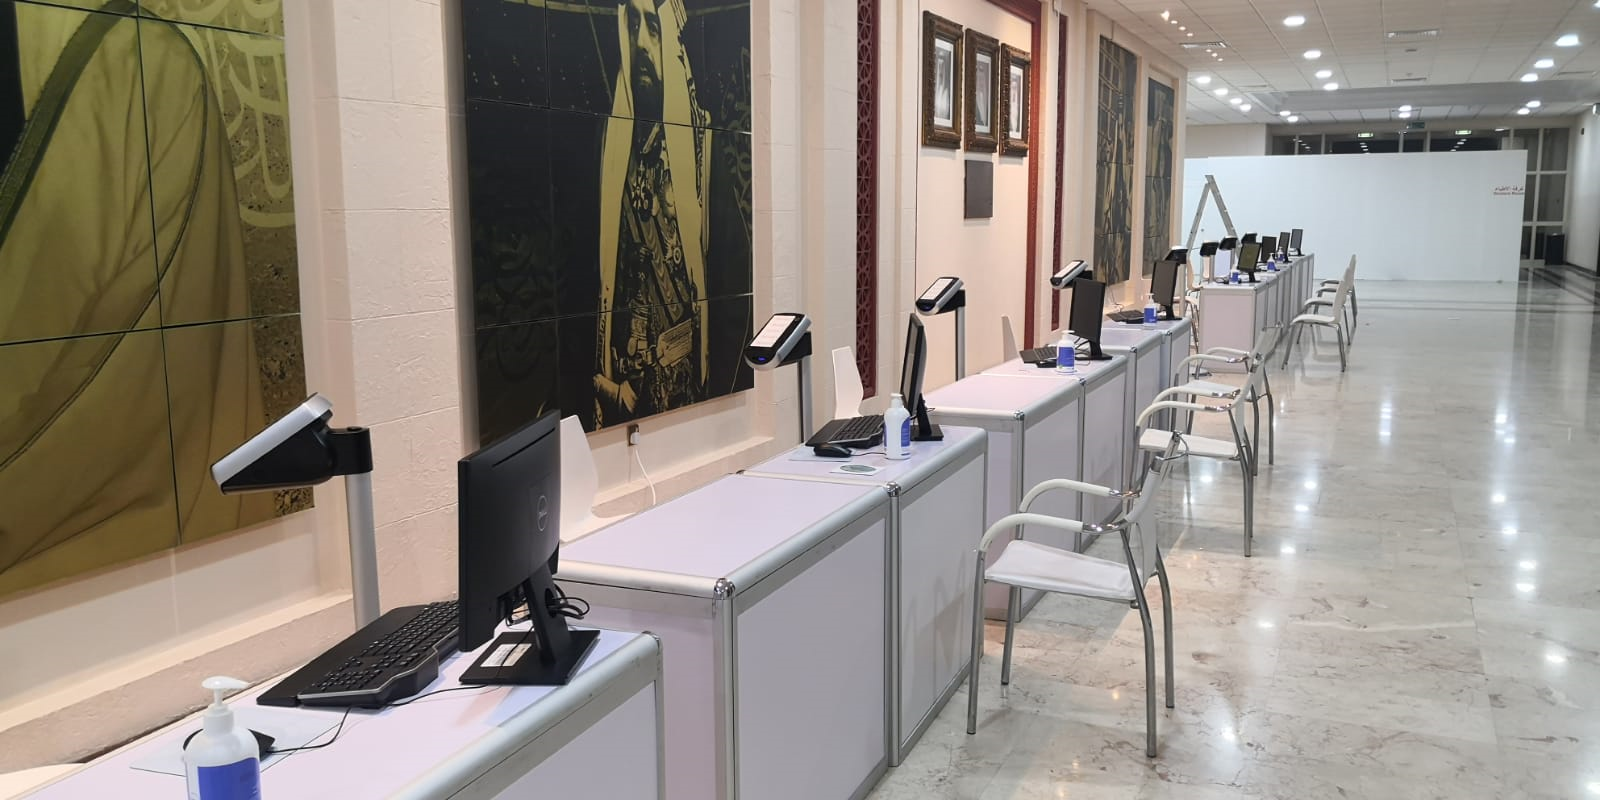 row of desks in a room with kiosks